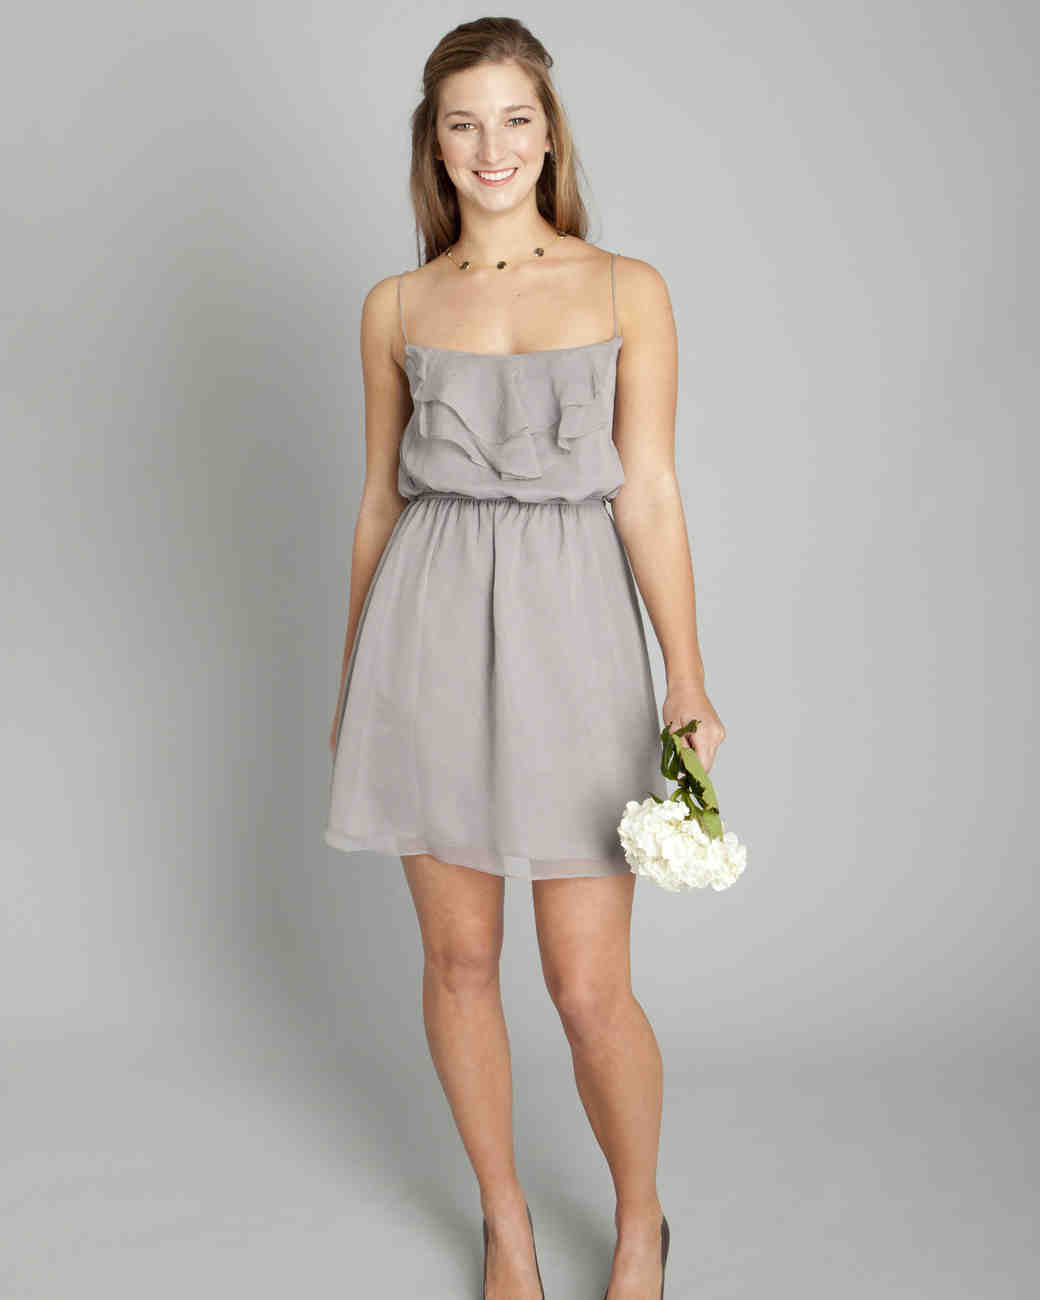 Bridesmaid dresses for beach weddings martha stewart for Dresses for wedding bridesmaid